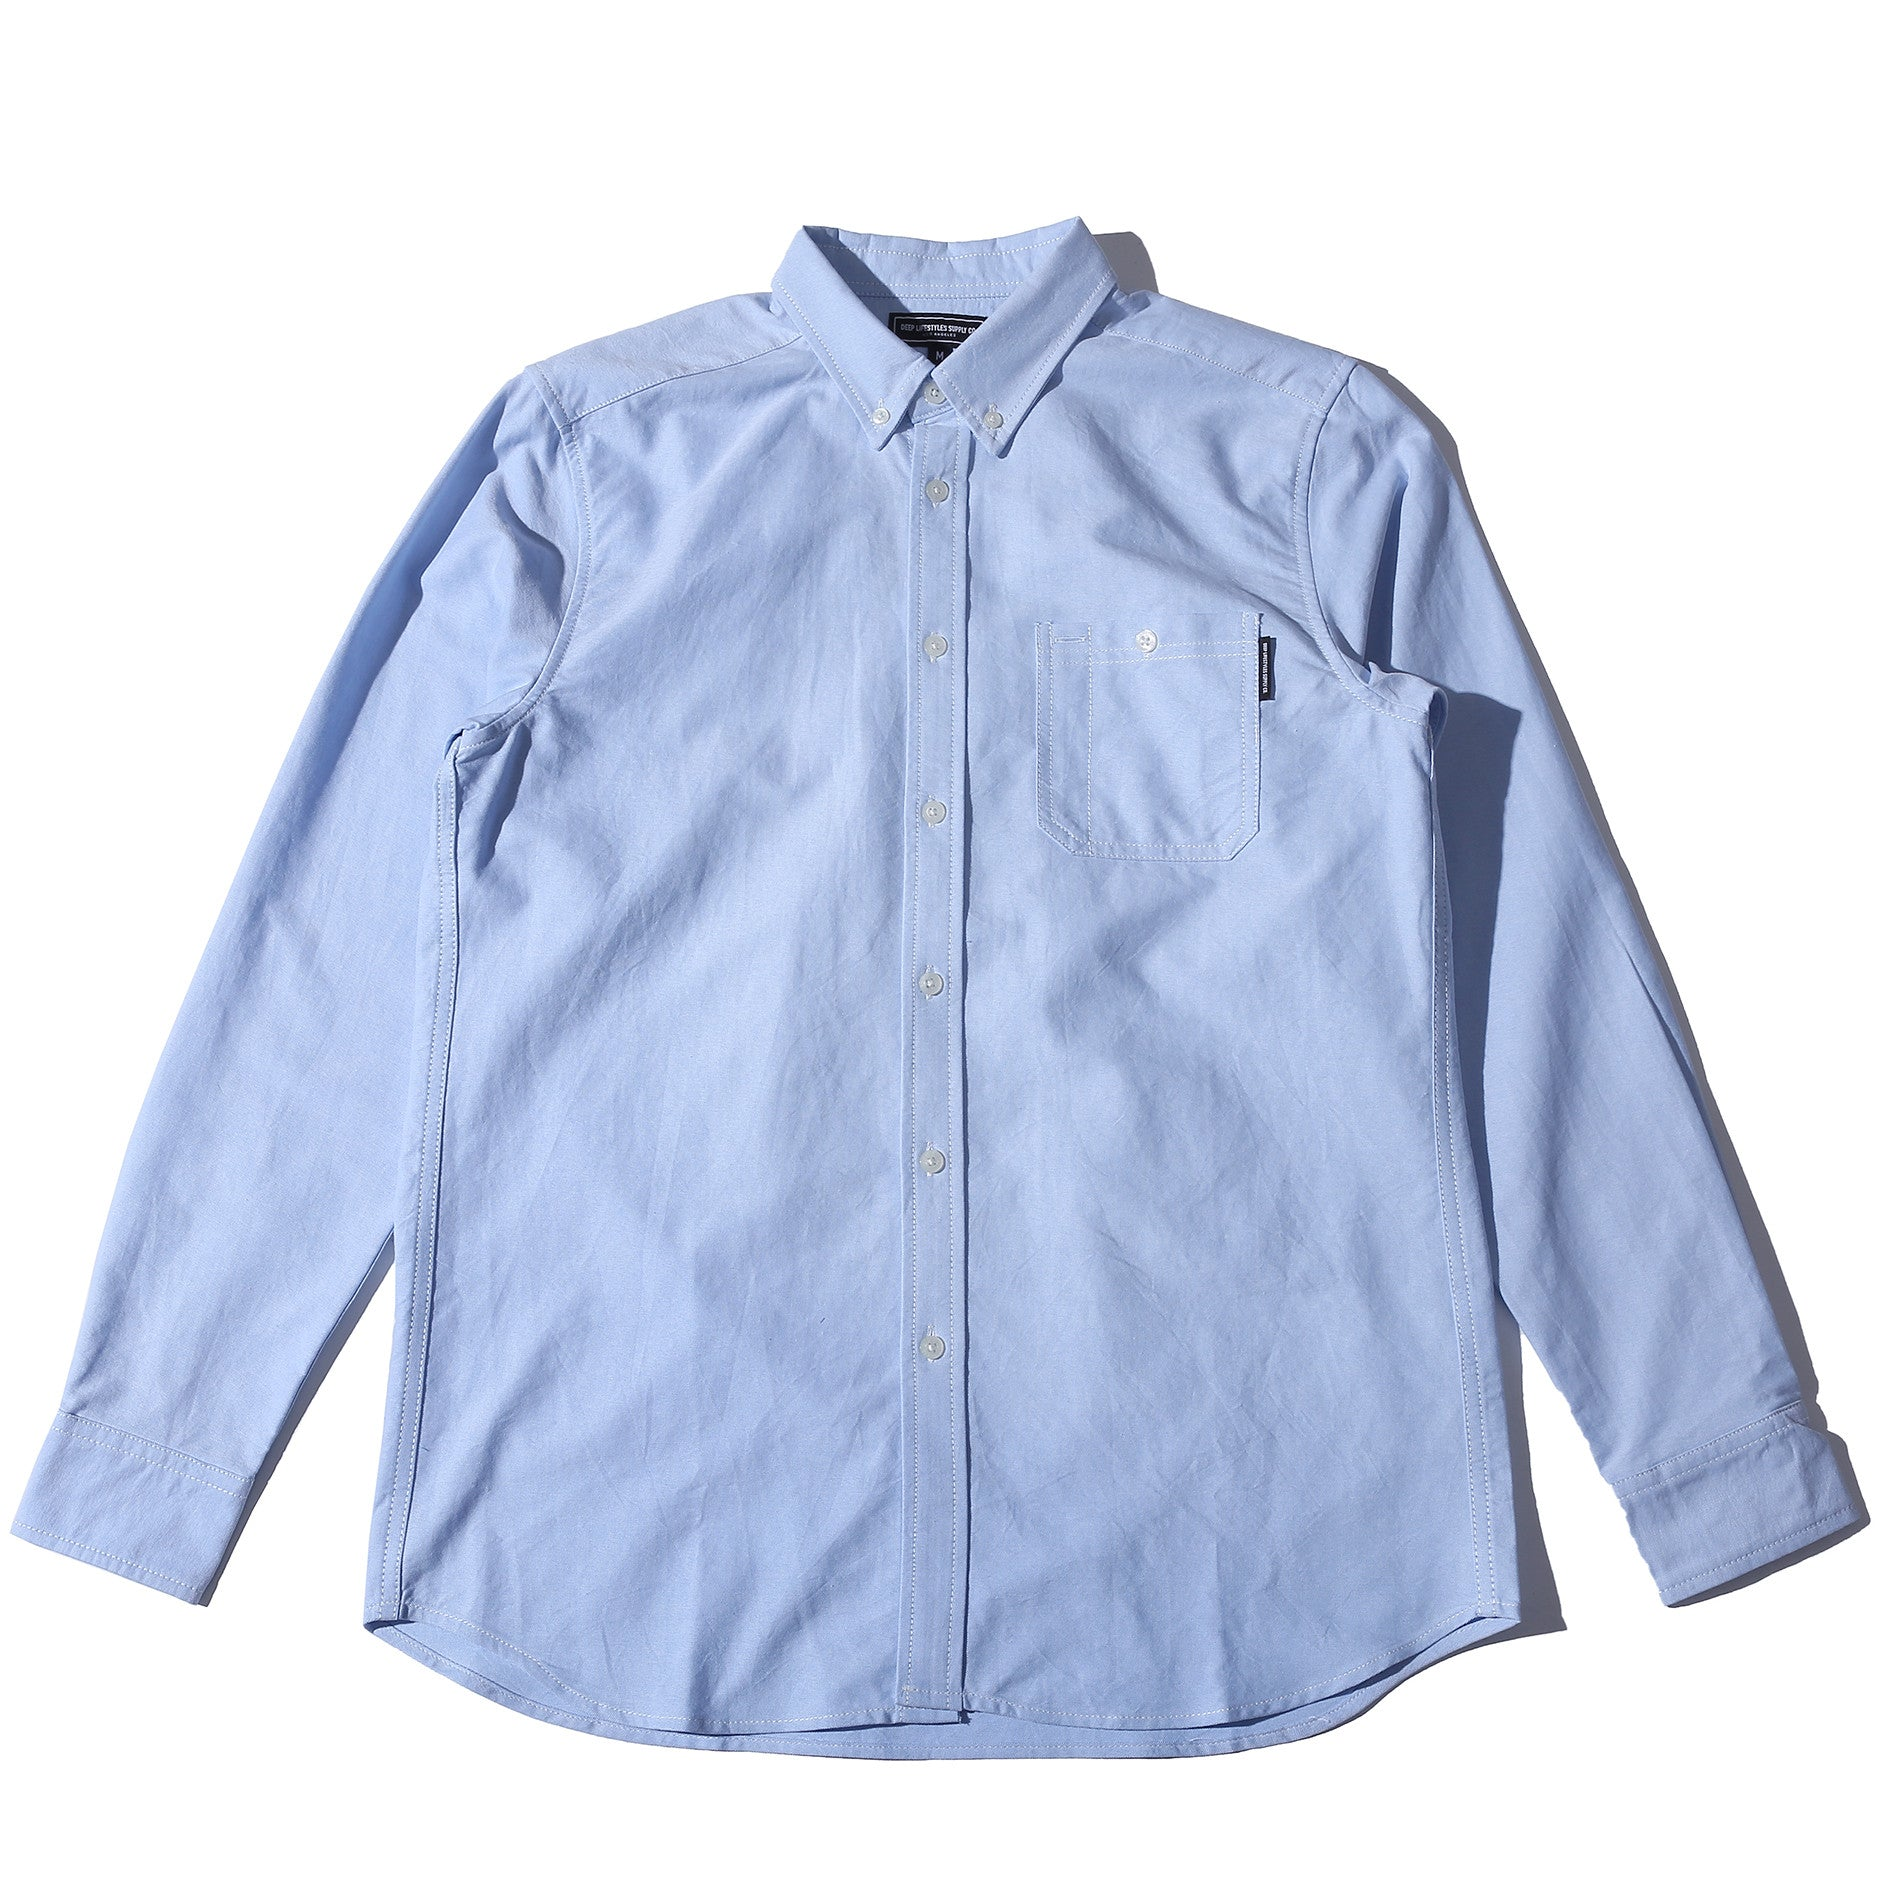 DL SUPPLY CO OXFORD SHIRT - BLUE